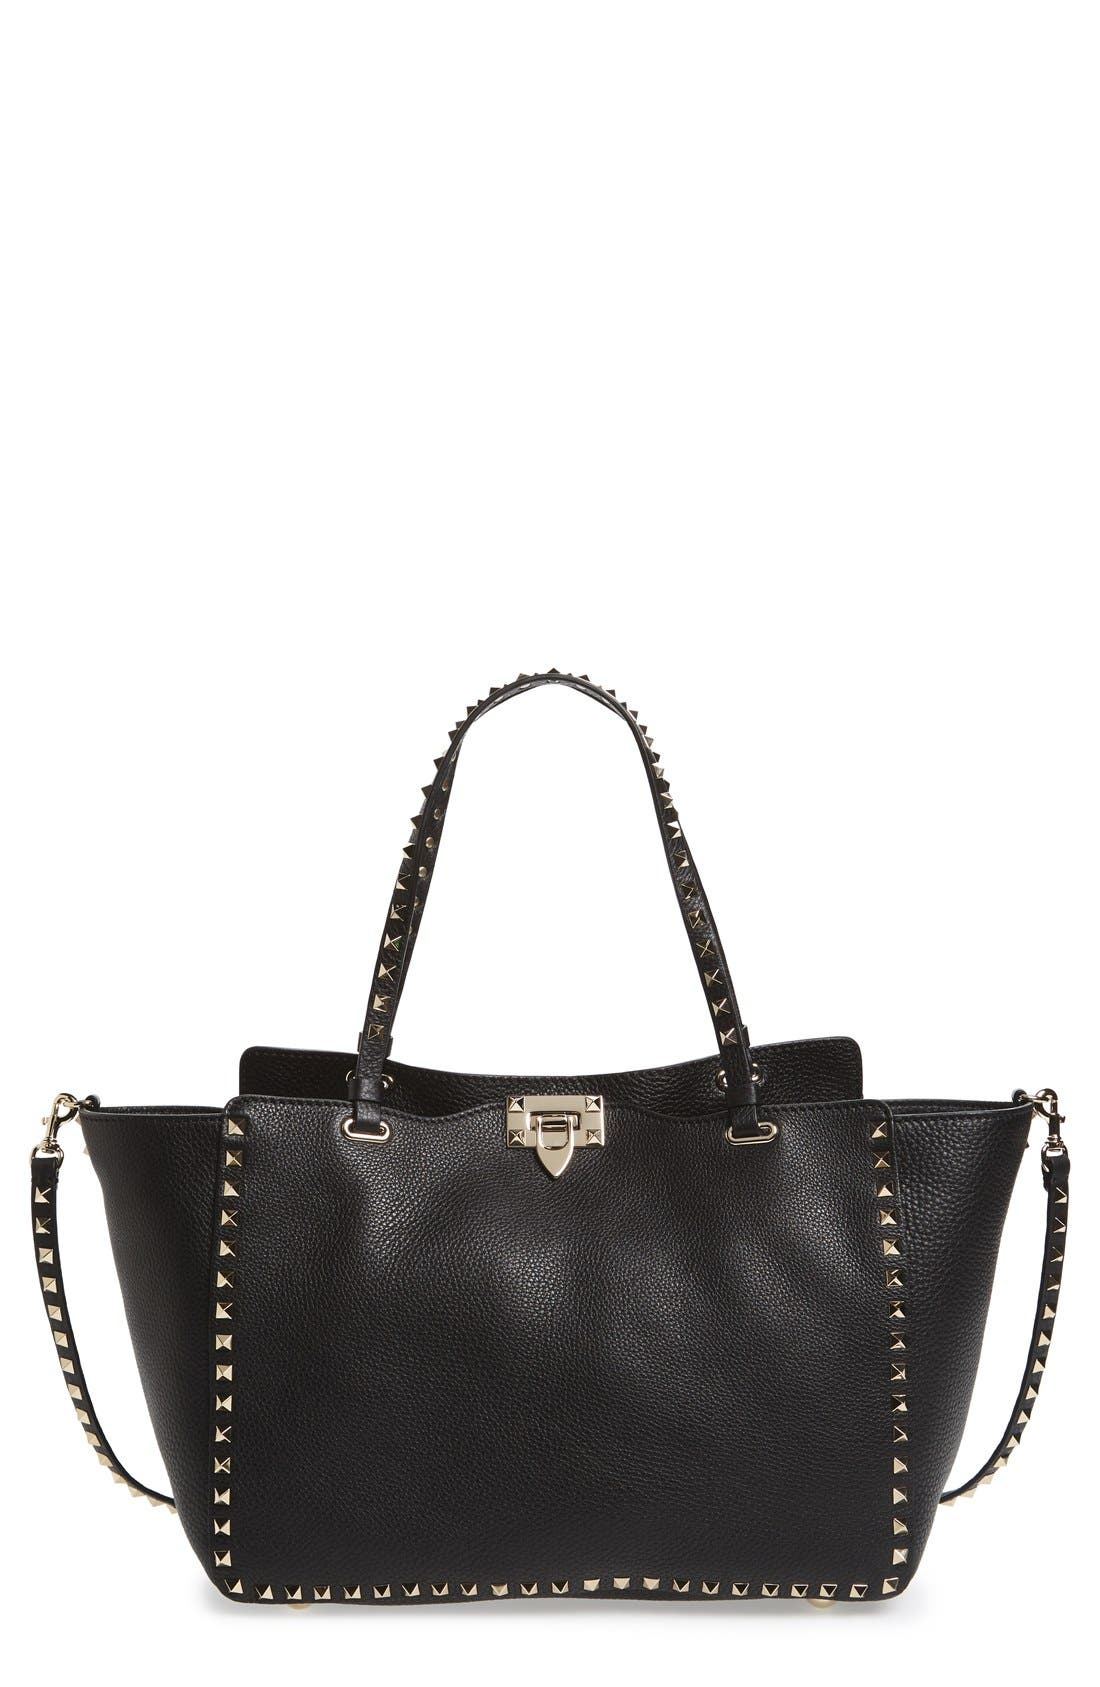 VALENTINO GARAVANI Rockstud Grained Calfskin Leather Tote